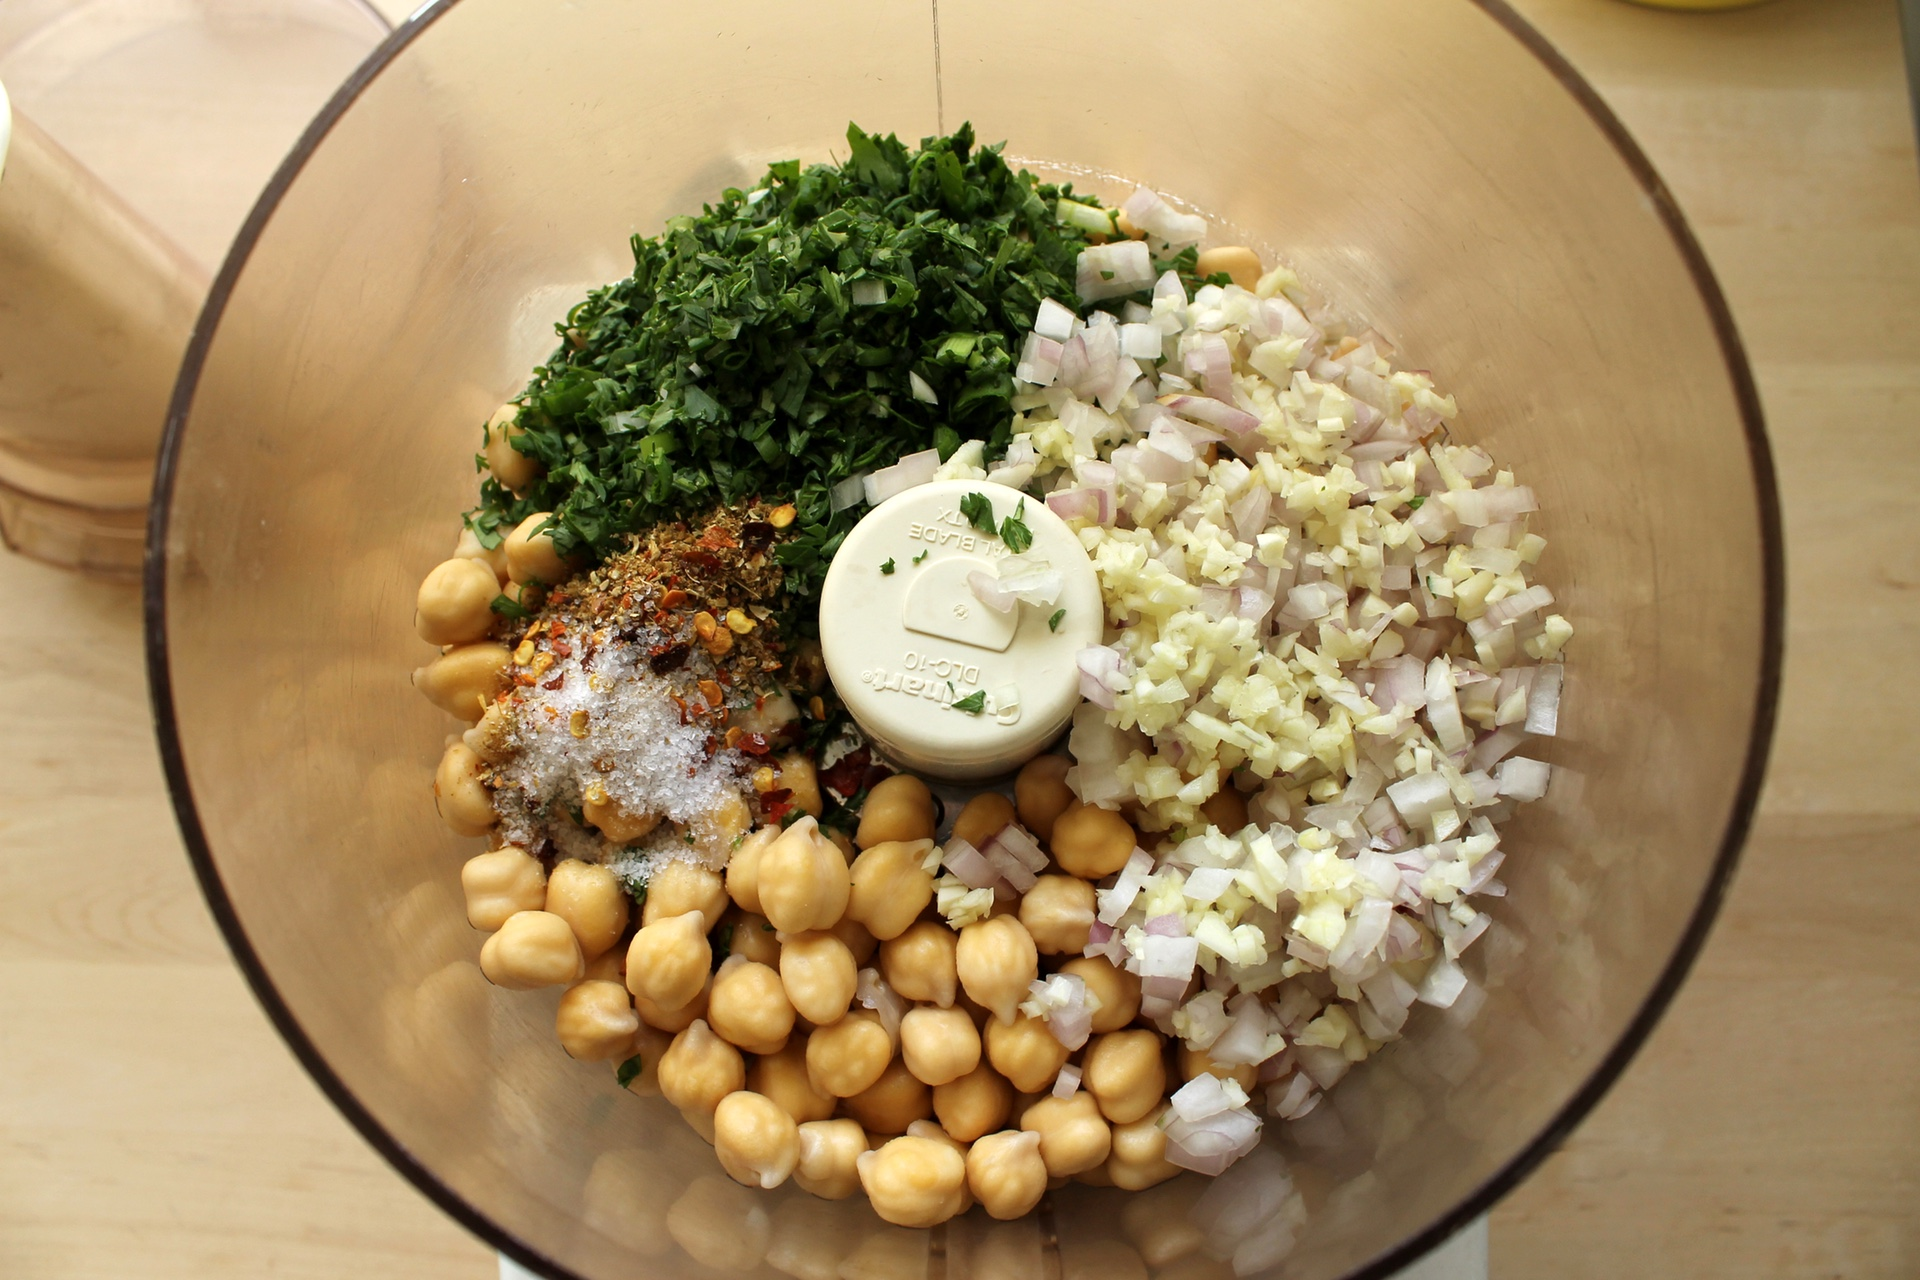 Combine the chickpeas with spices and minced aromatics.